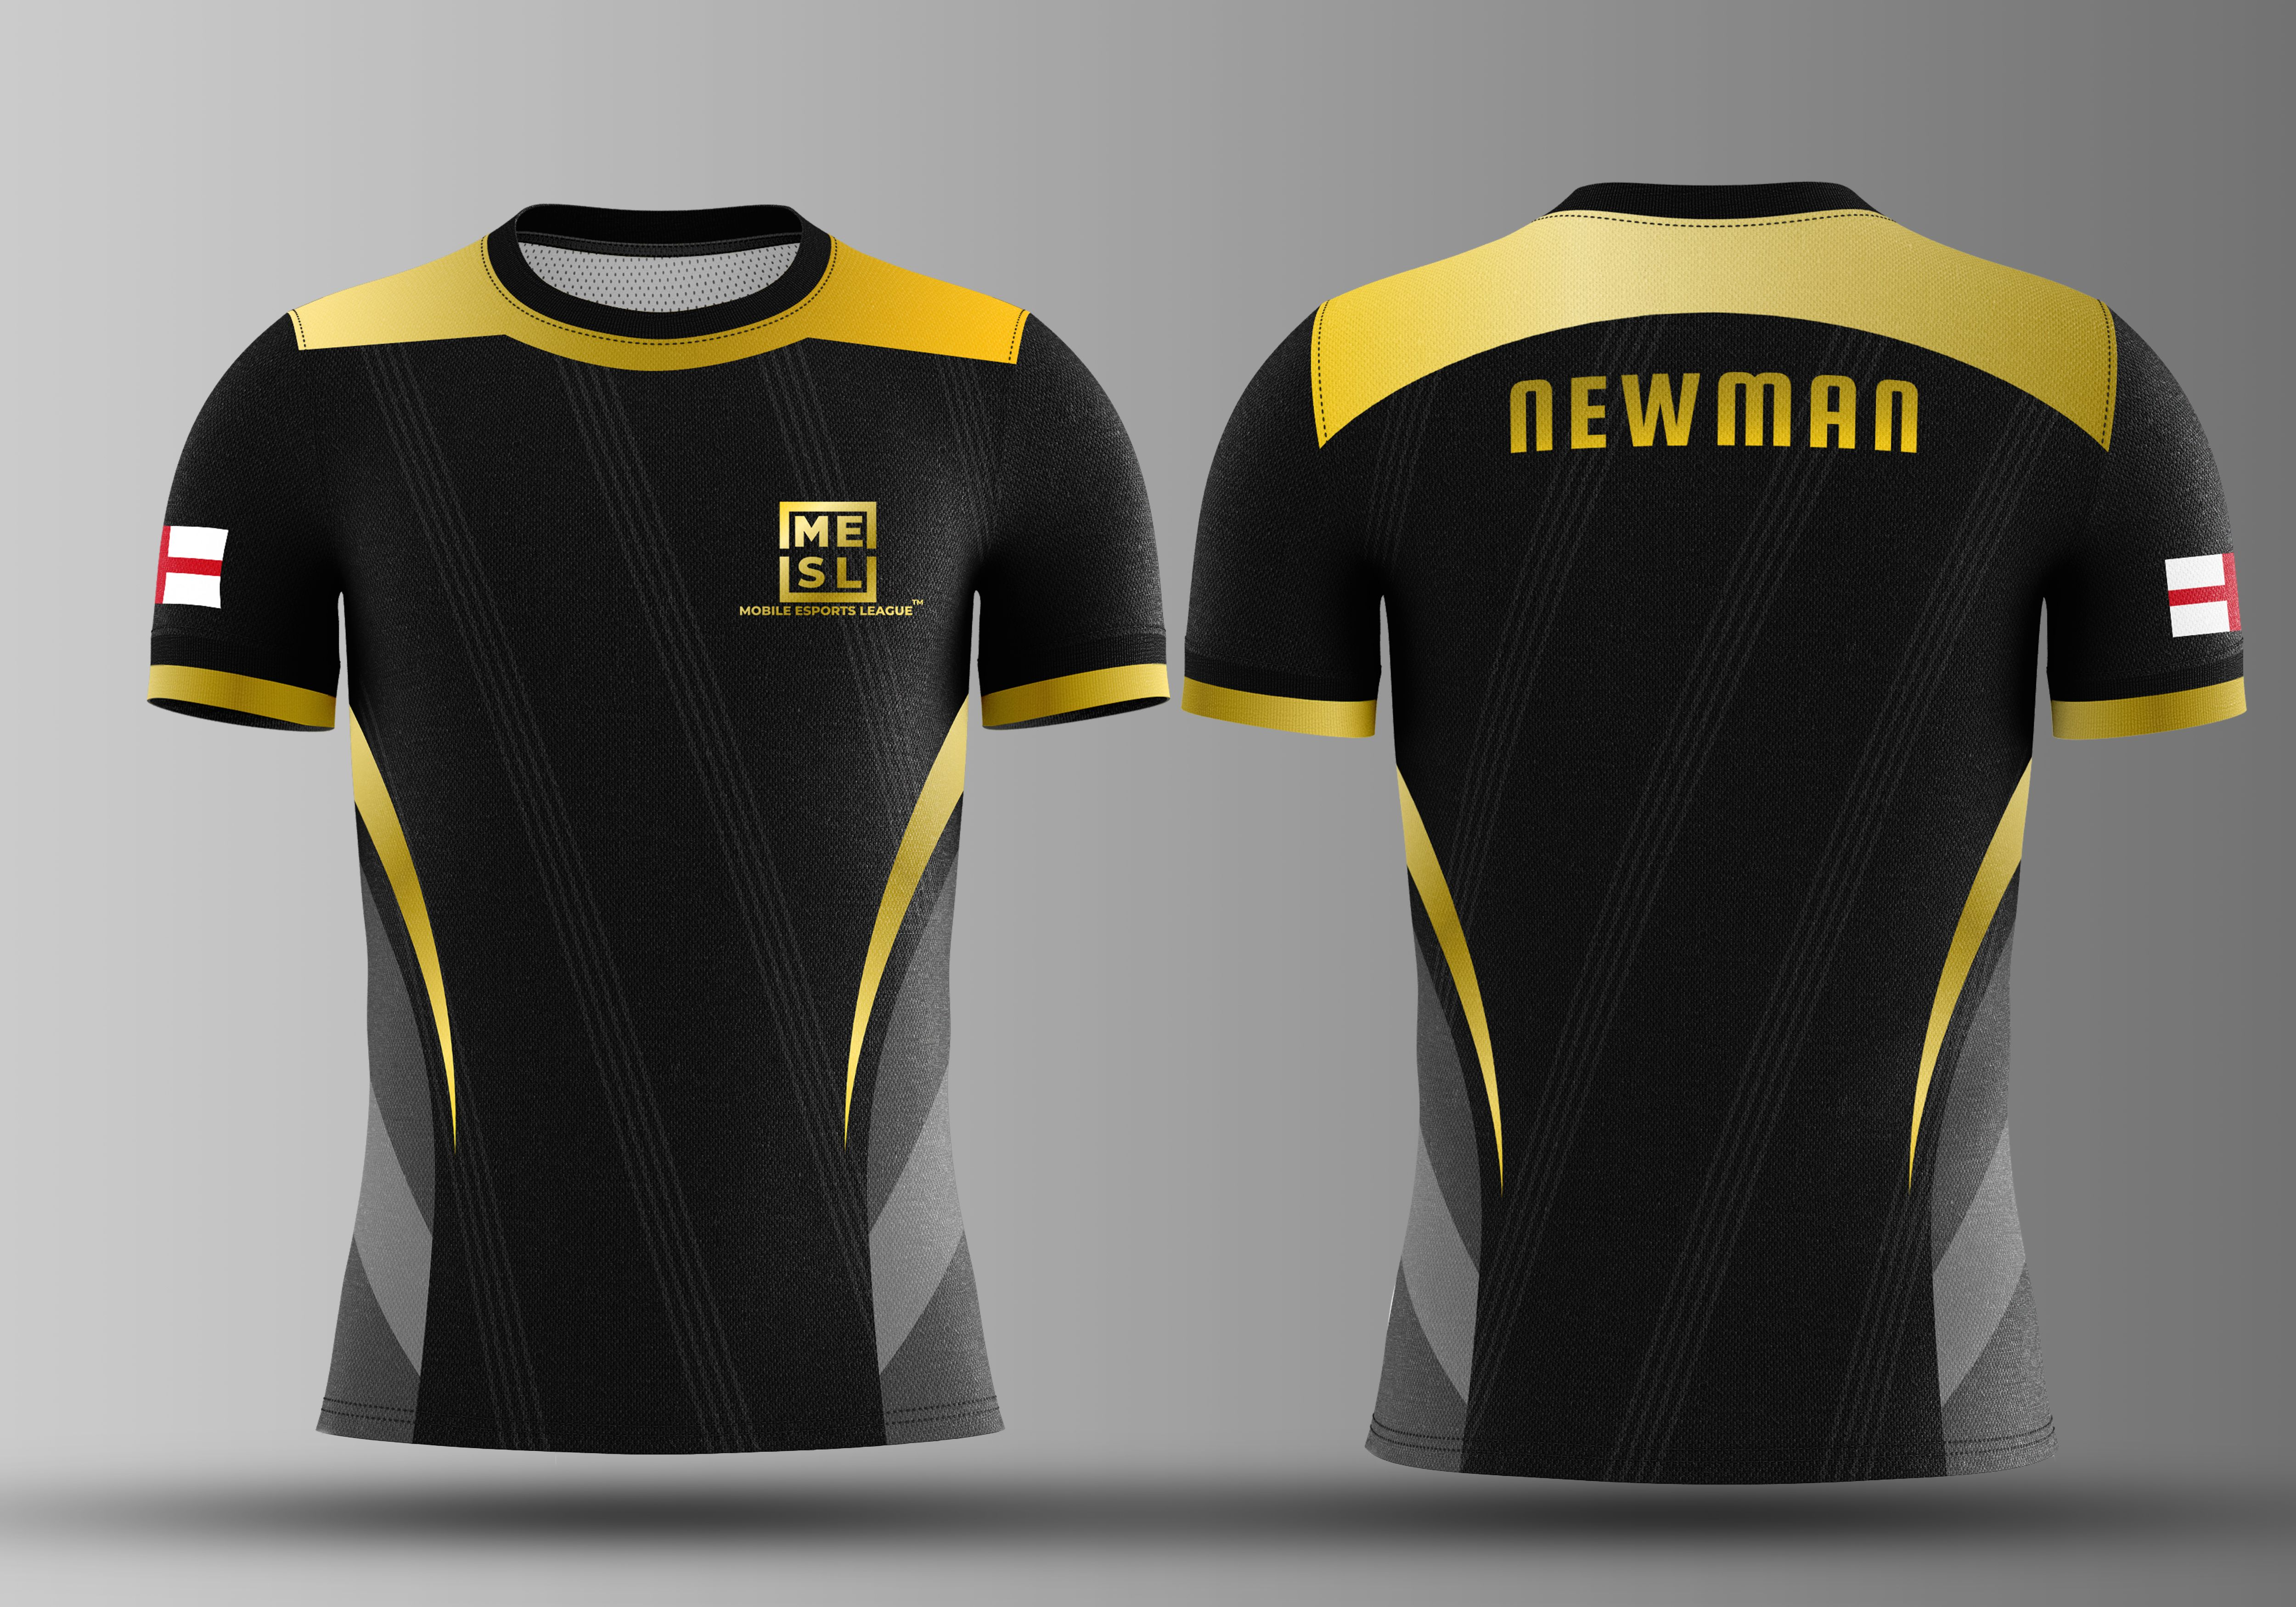 Download Under21 I Will Design Jersey For Esports Soccer Etc In 24 Hours For 10 On Fiverr Com Jersey Design Jersey Shirt Illustration